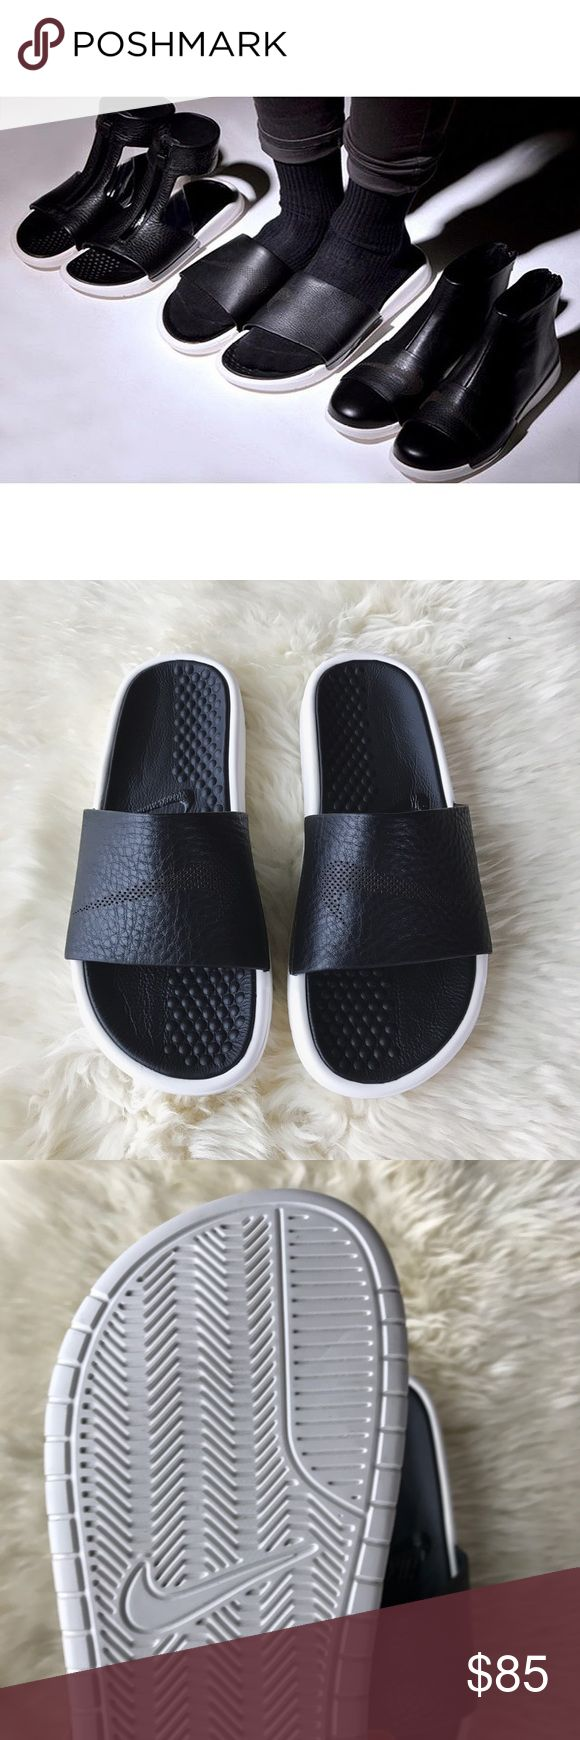 NikeLab Benassi Lux Leather Slides •The NikeLab Benassi Lux Women's Slide brings premium details that elevate the classic silhouette. The Supple leather strap with jersey lining offer plush comfort while injected Phylon sole for soft, lightweight cushioning.  •Women's size 6  •New in box (no lid).  •NO TRADES/HOLDS/PAYPAL/MERC/VINTED/NONSENSE. Nike Shoes Slippers